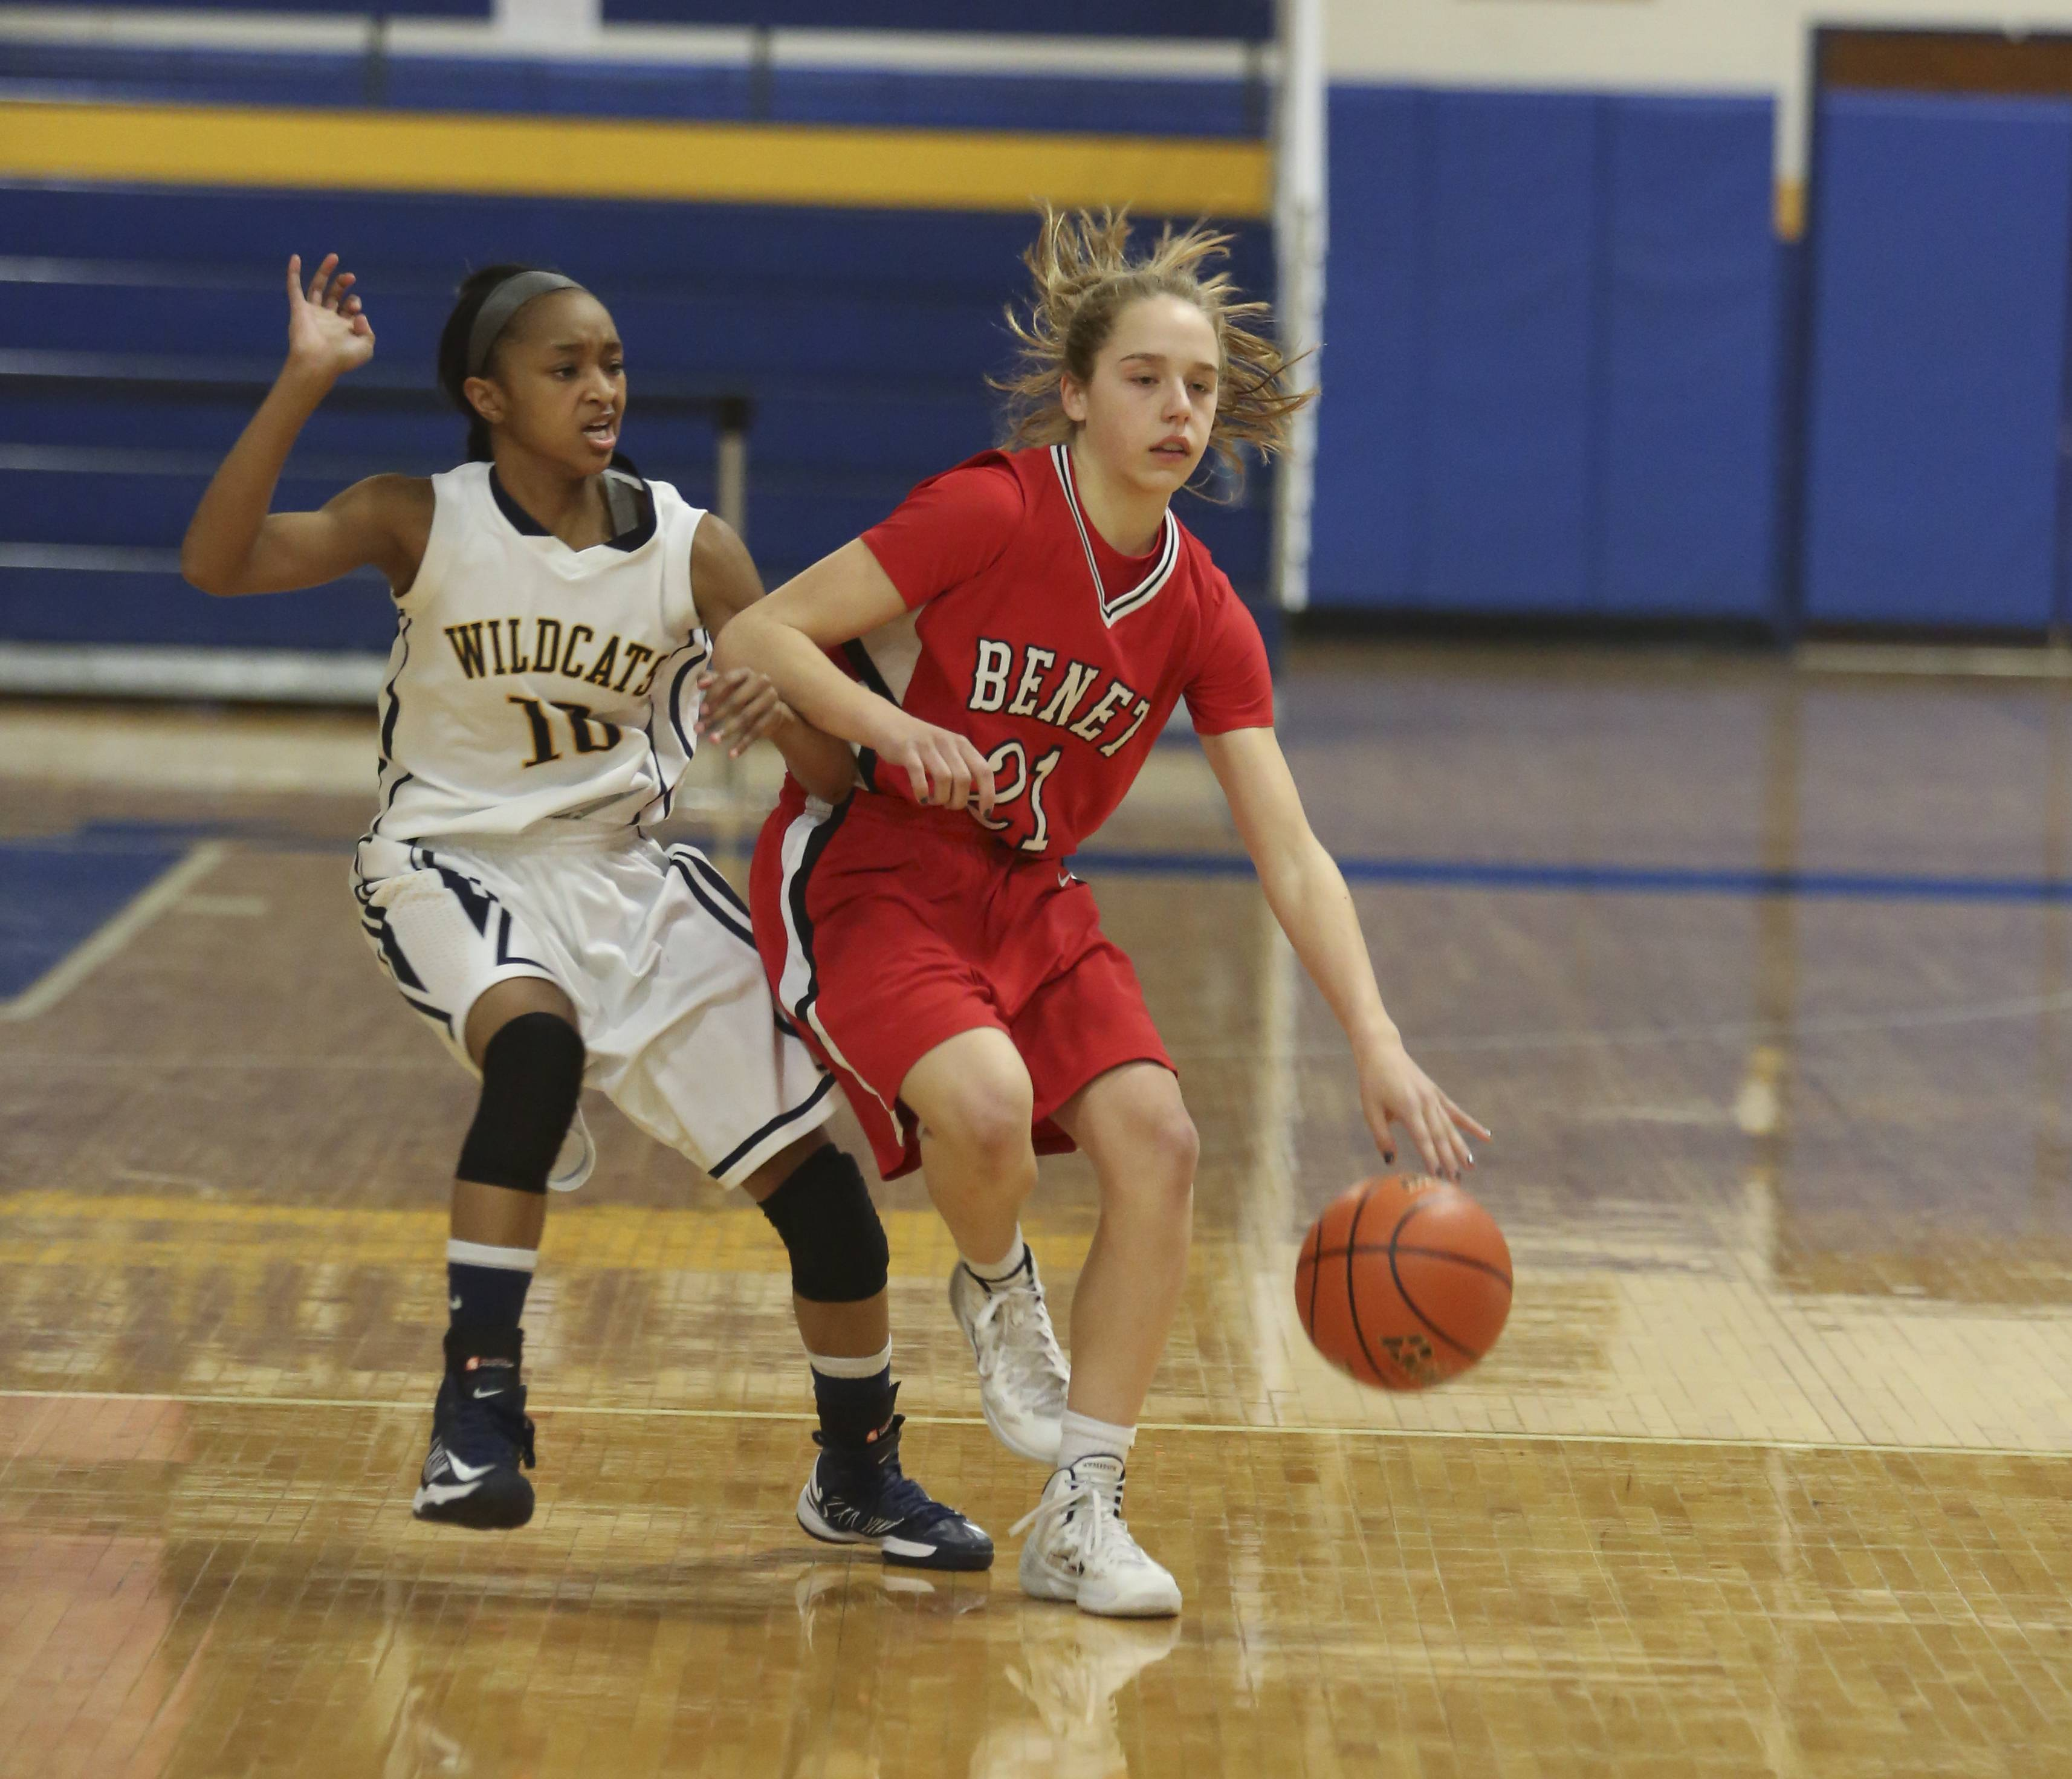 Photos from the Neuqua Valley vs. Benet Academy girls basketball at Joliet Central High School Monday, Feb. 24.